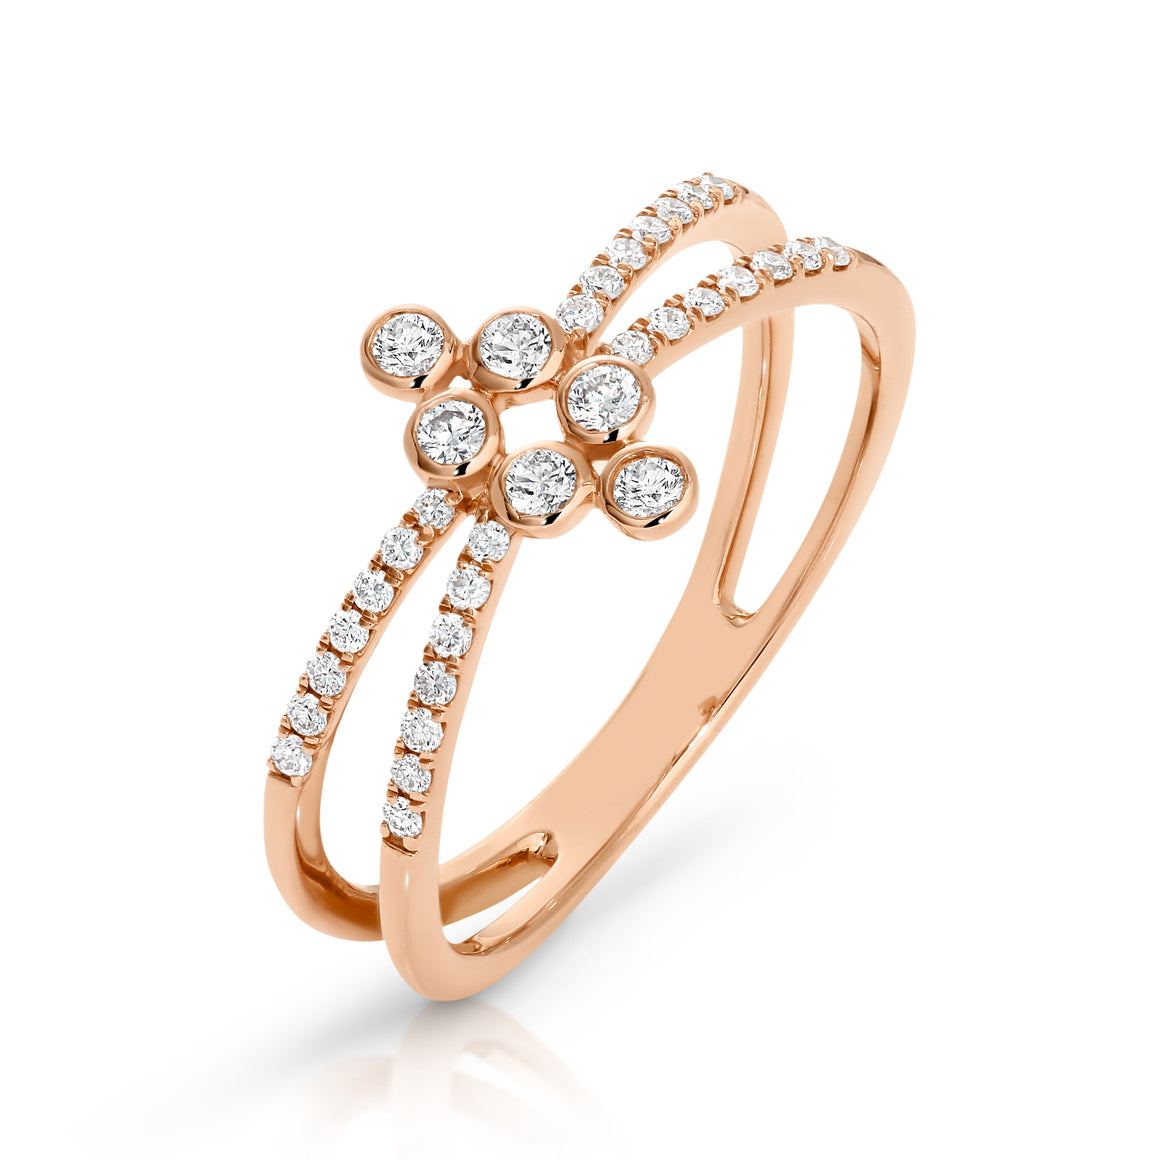 9ct Gold & Diamond Claire Ring - Gemma Stone Jewellery